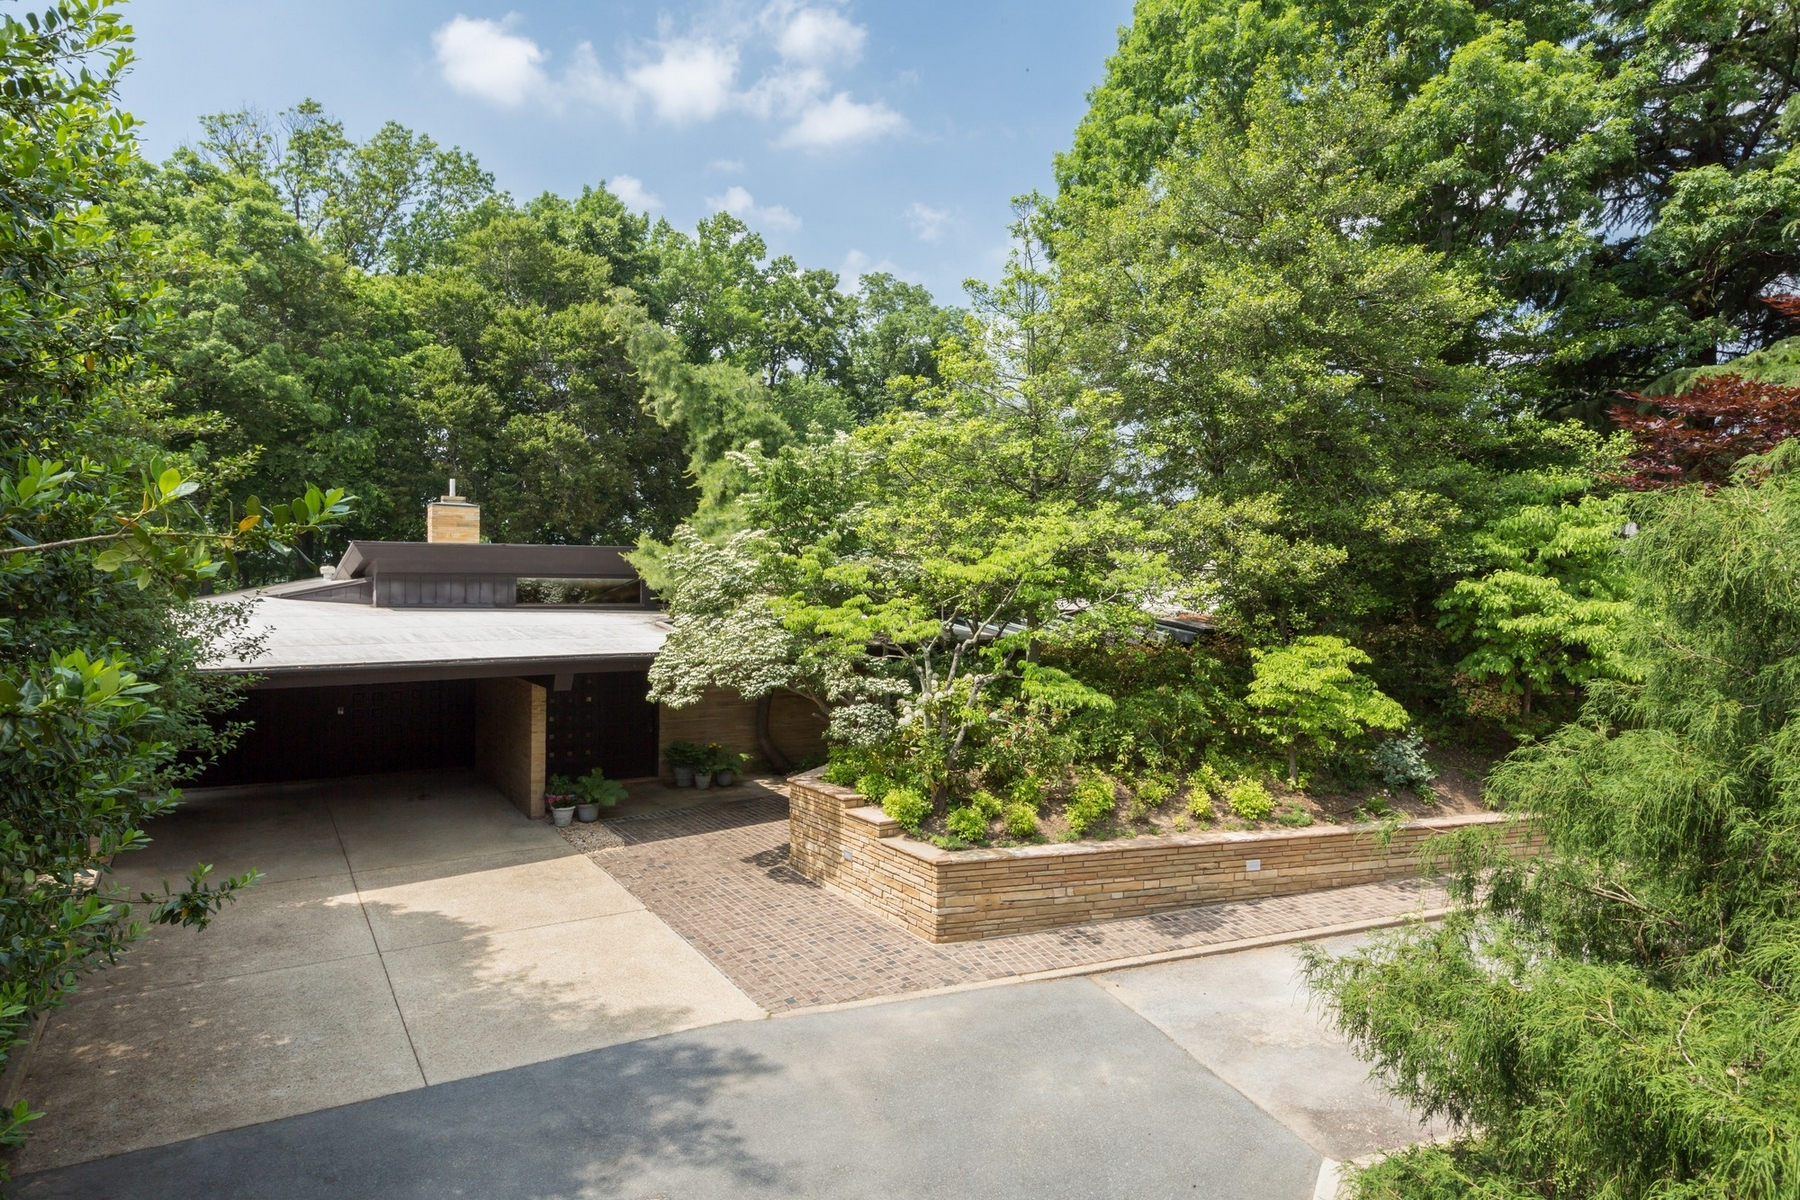 Single Family Home for Sale at Ridgewood Village 7410 Western Ave Chevy Chase, Maryland 20815 United States